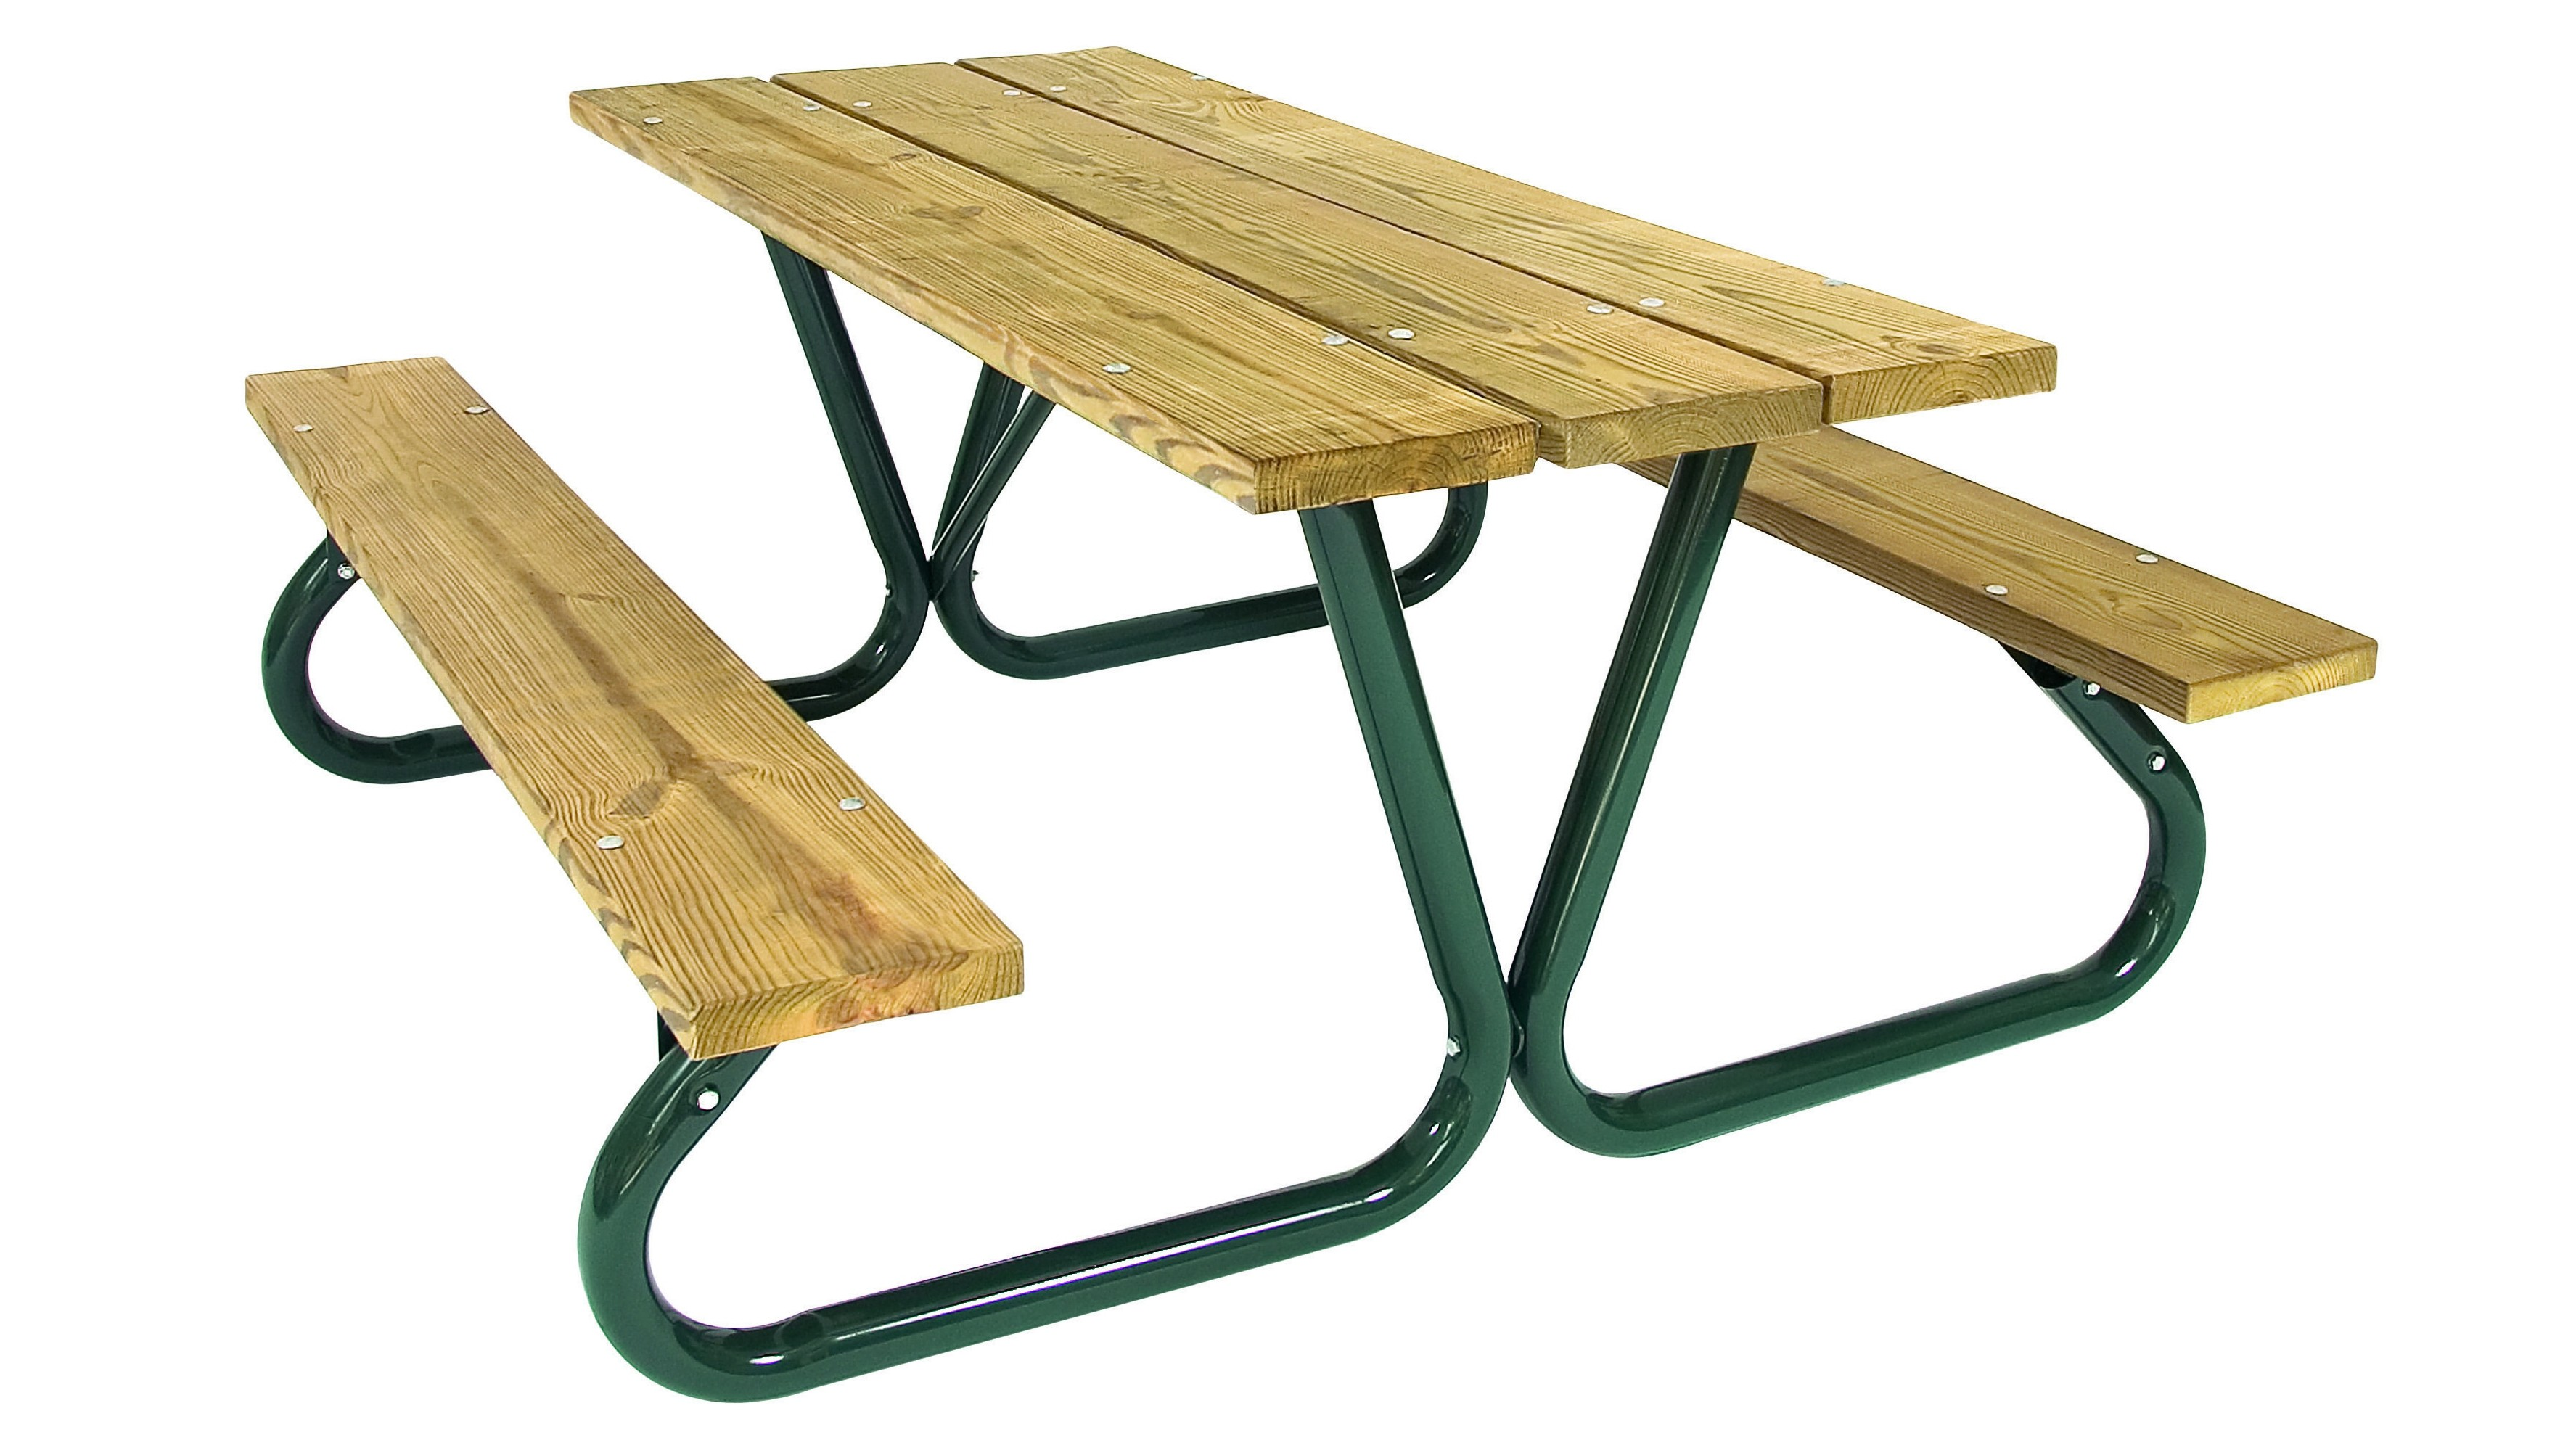 Heavy Duty, Southern Yellow Pine Slat Picnic Table